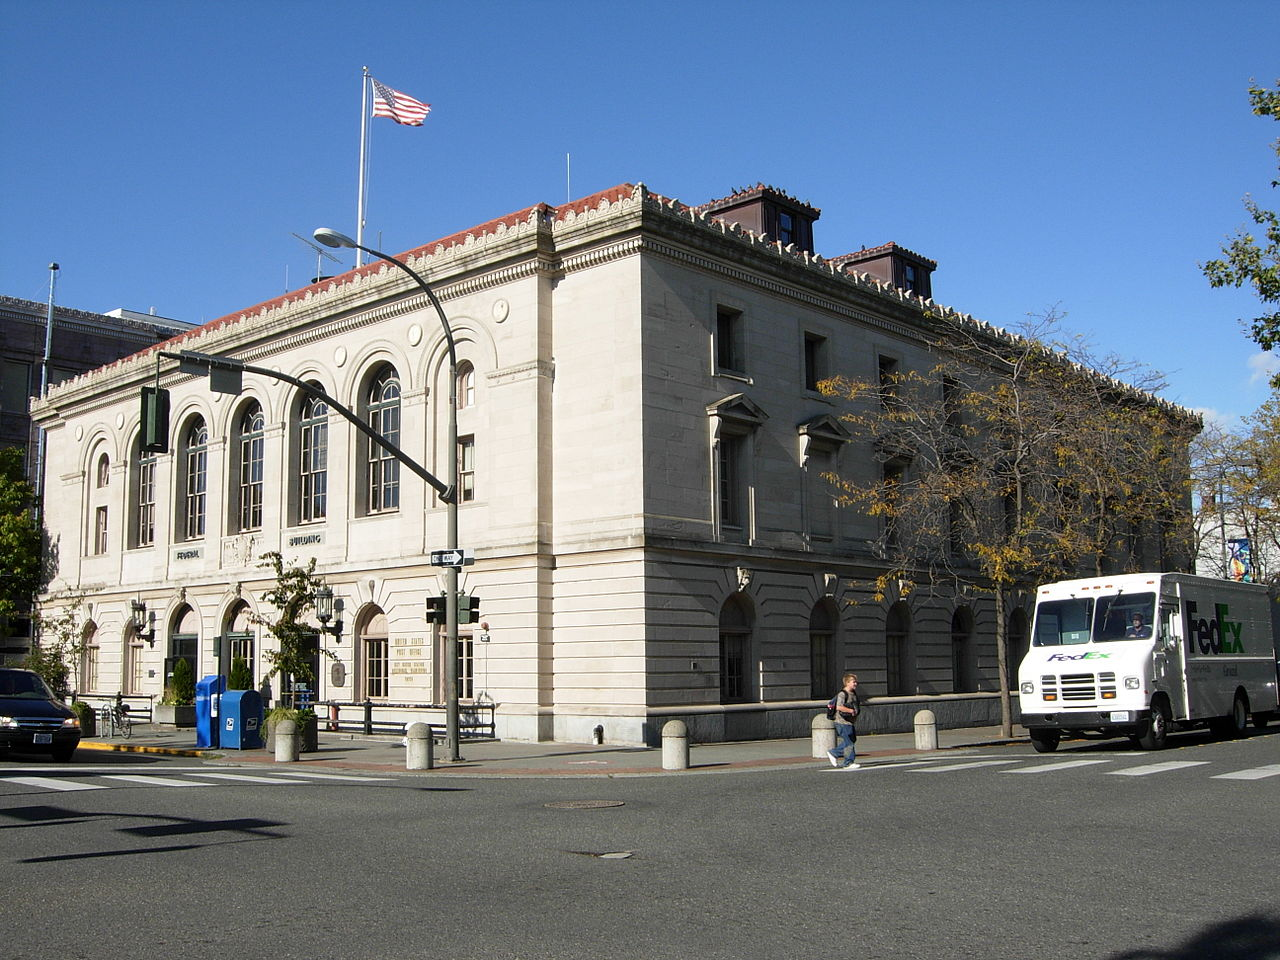 The former U.S. Post Office Courthouse was built in 1913 and is the finest example of Second Italian Renaissance Revival architecture in the city.